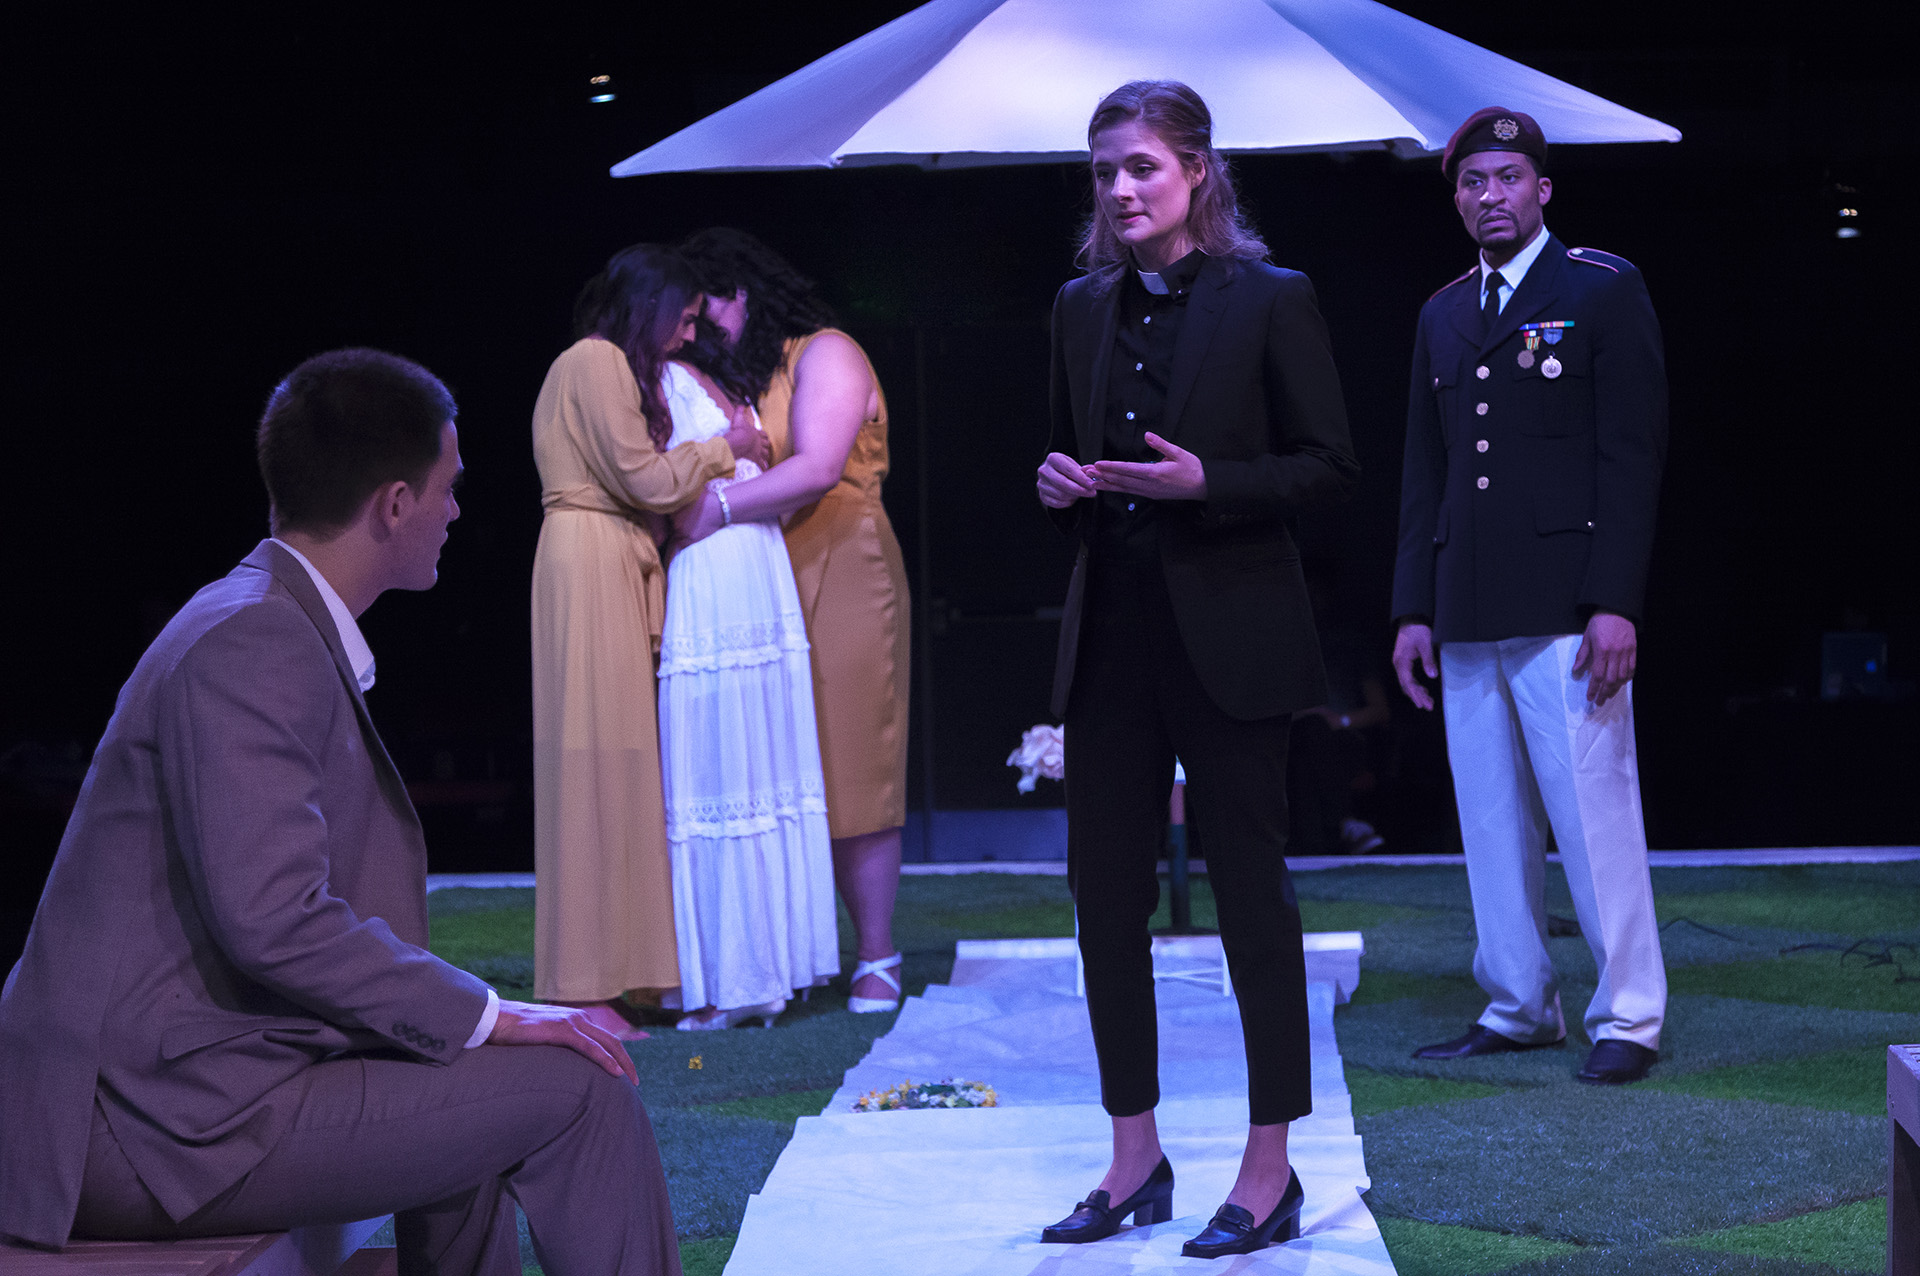 MUCH ADO ABOUT NOTHING by William Shakespeare, directed by Jecamiah M. Ybañez ('19), scenic design by Stephanie Osin Cohen ('19), costume design by Sophia Choi ('18), lighting design by Evan Anderson ('20), Yale School of Drama, 2018. Photo by Brittany Bland ('19).